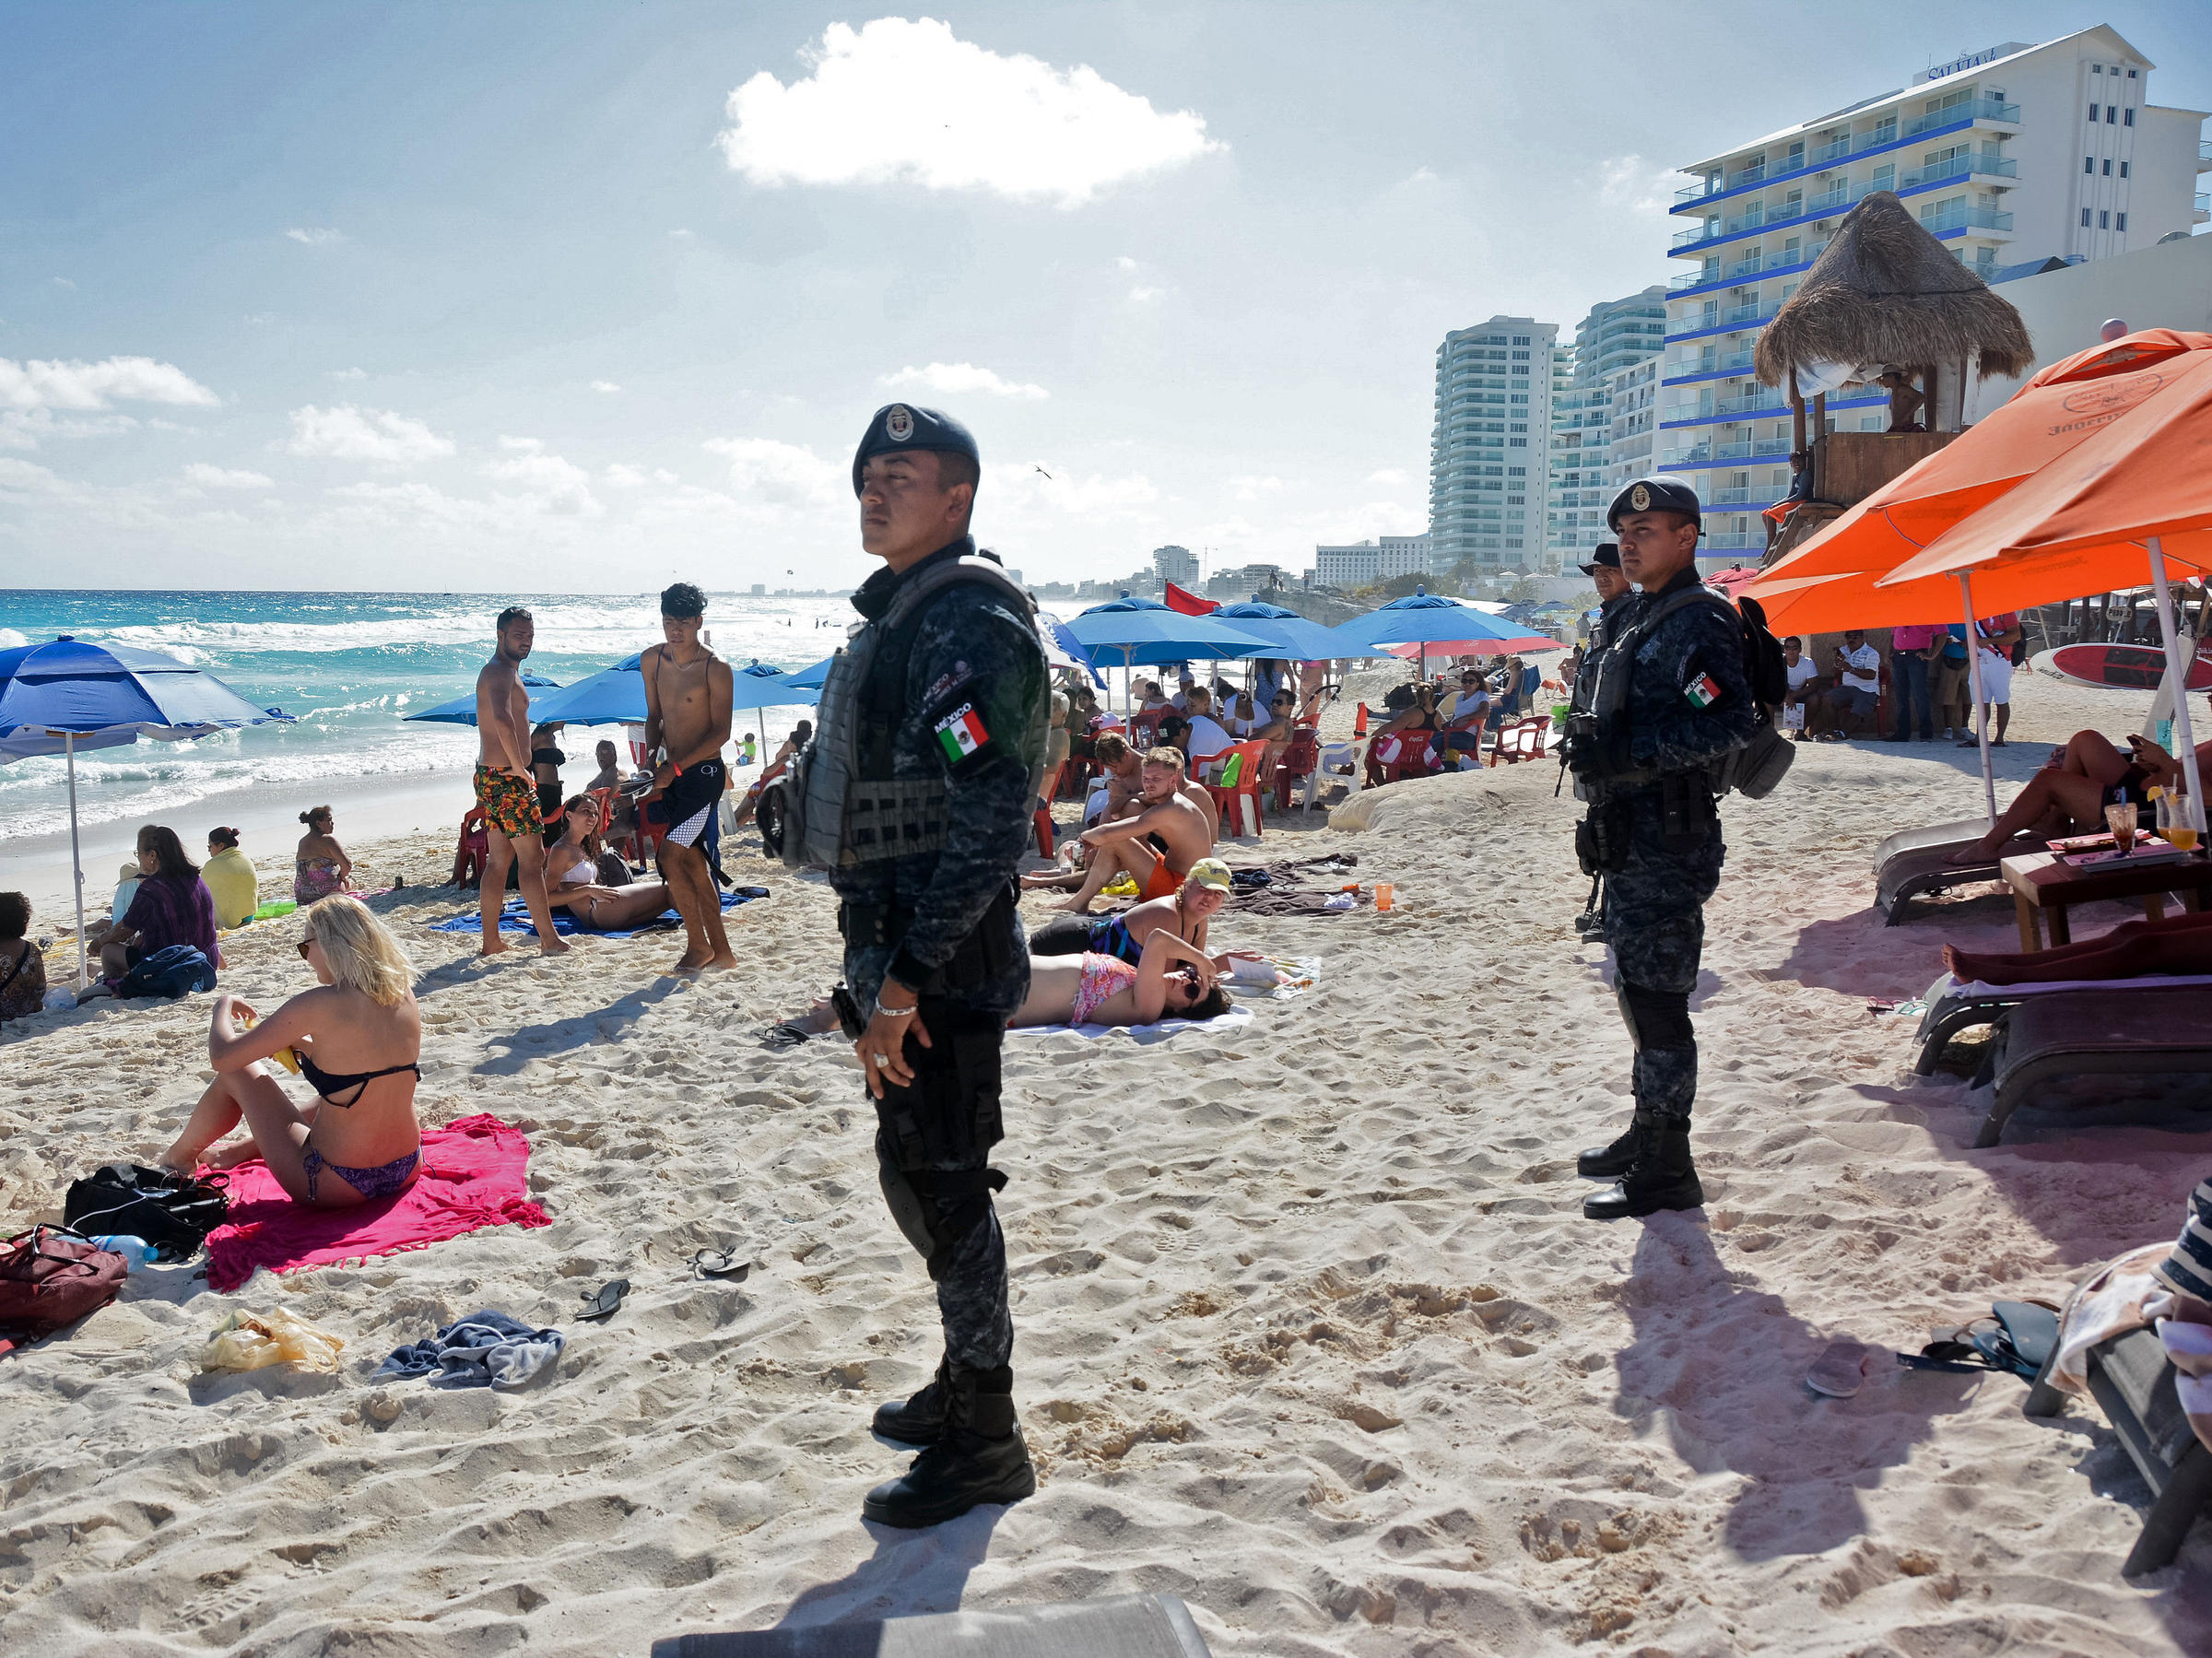 US Dept. of State issues travel warning for Mexico